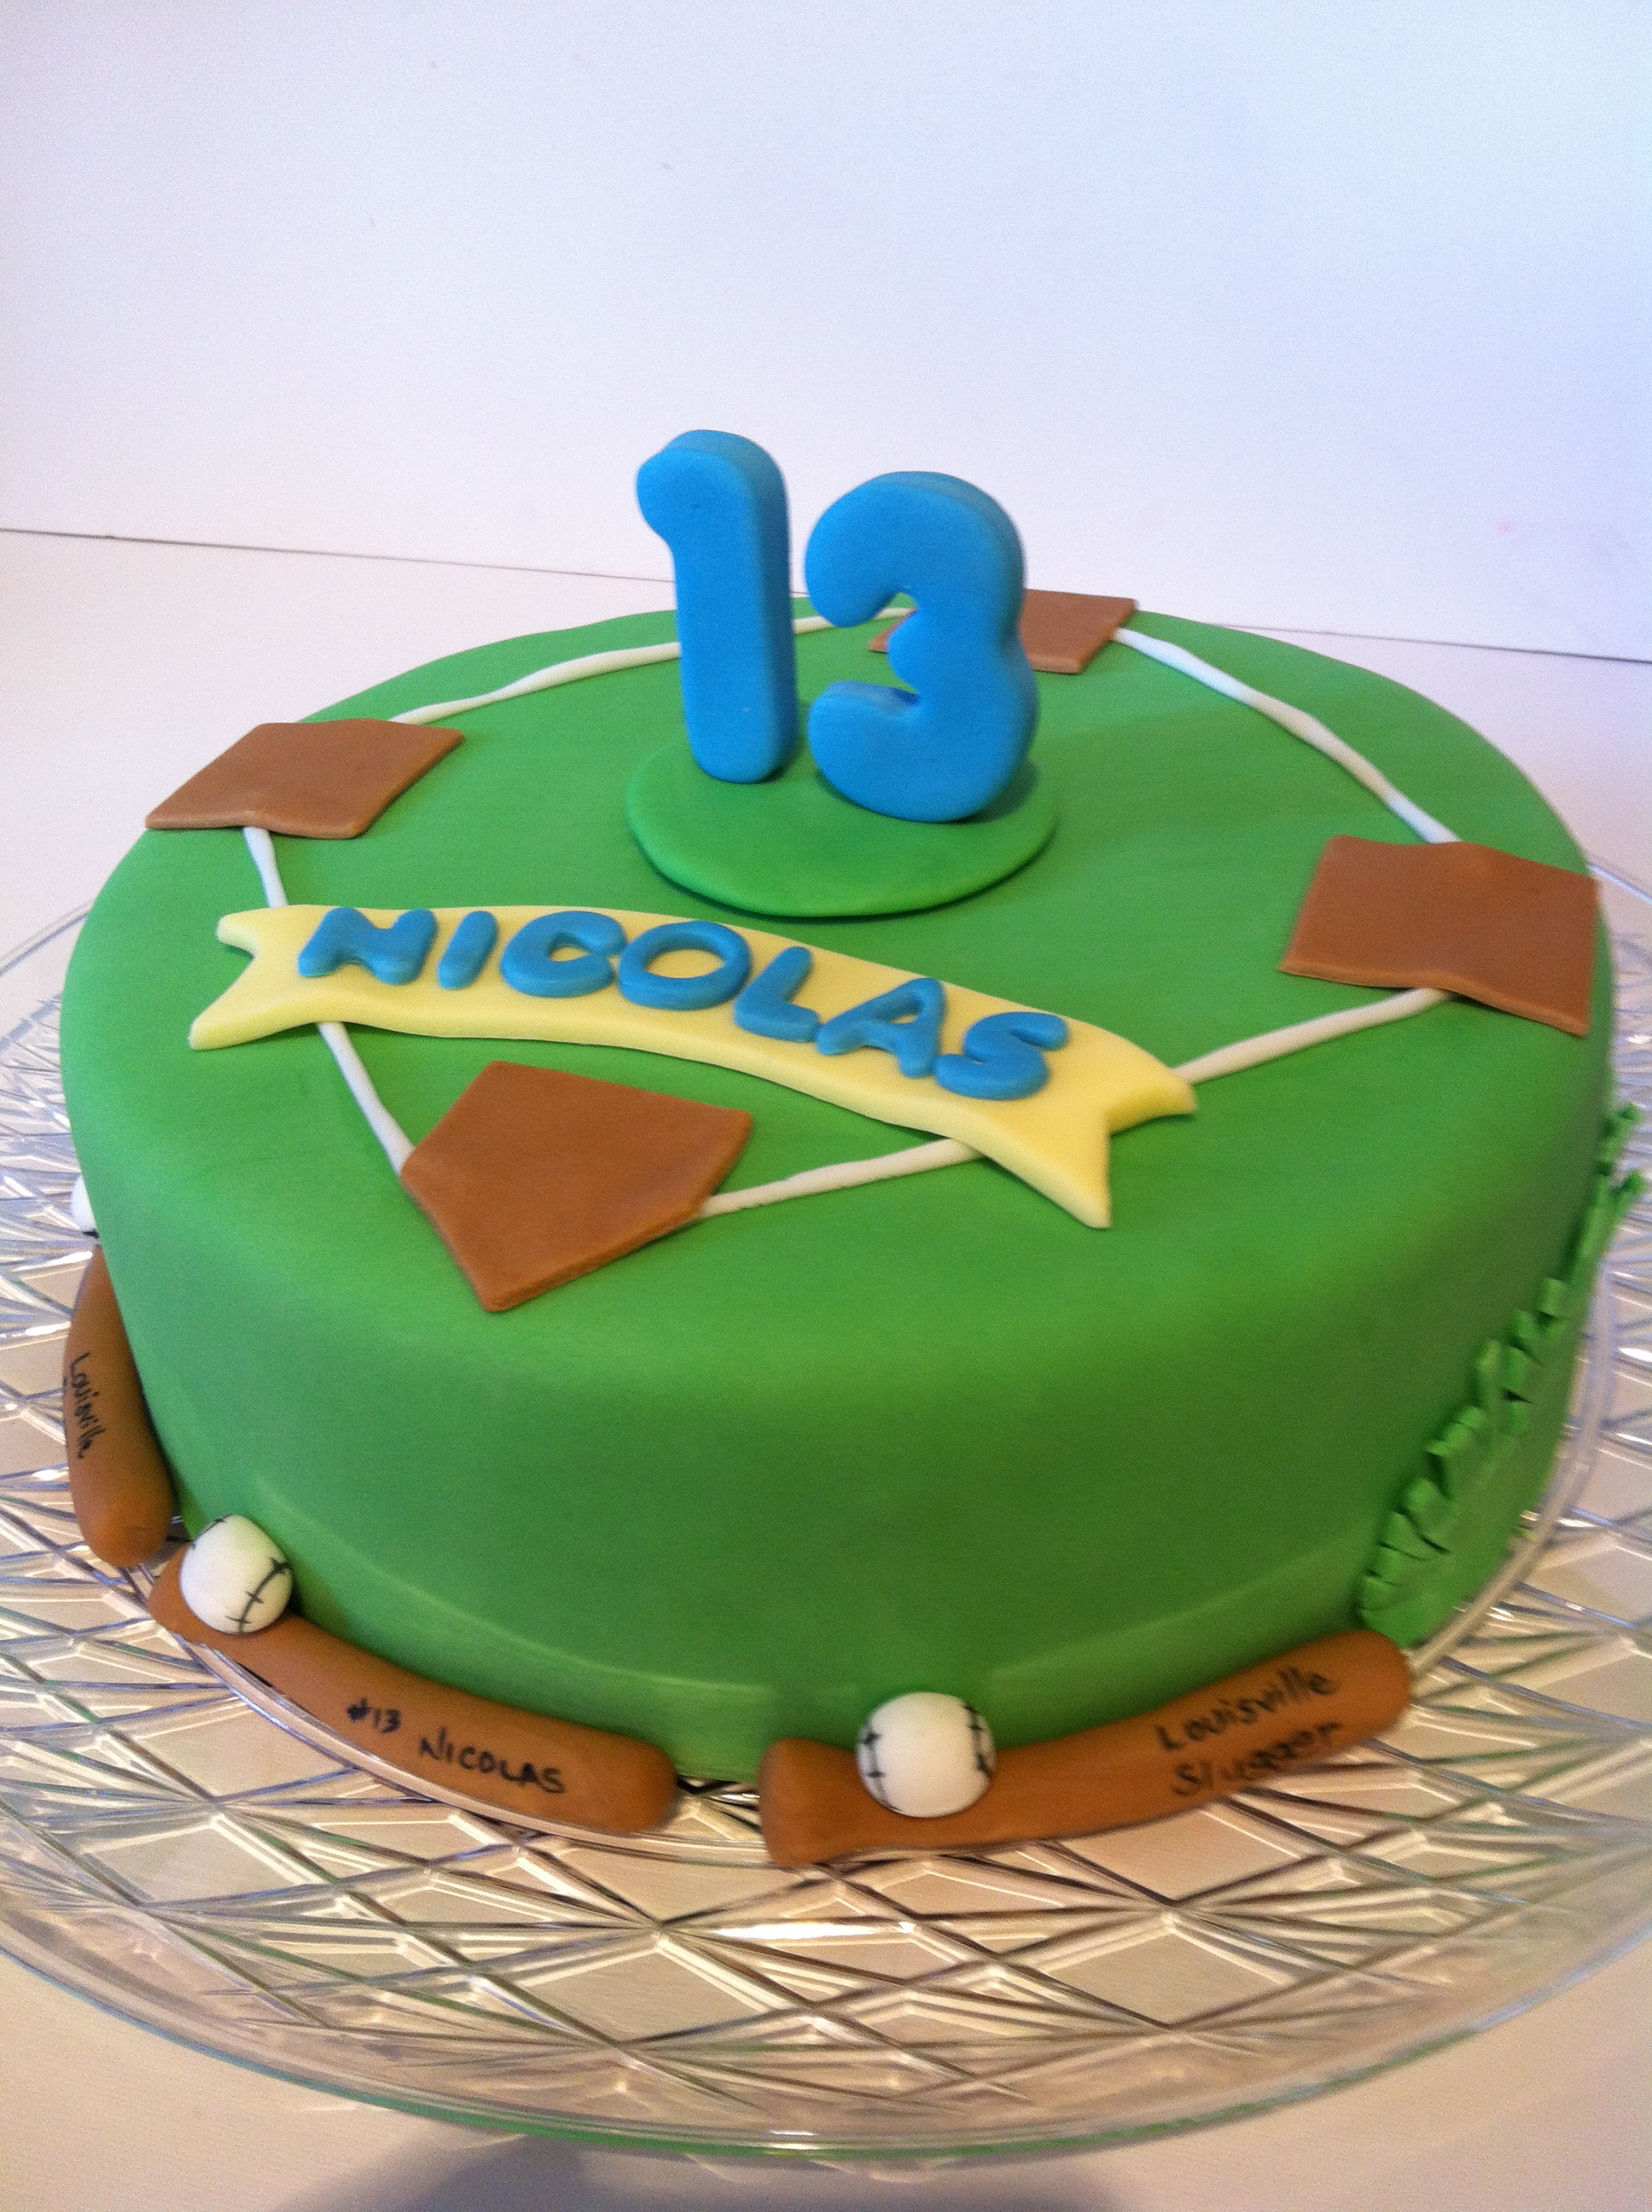 Awe Inspiring Baseball Cake 13 Years Old Cakes By Cathy Chicago Birthday Cards Printable Opercafe Filternl